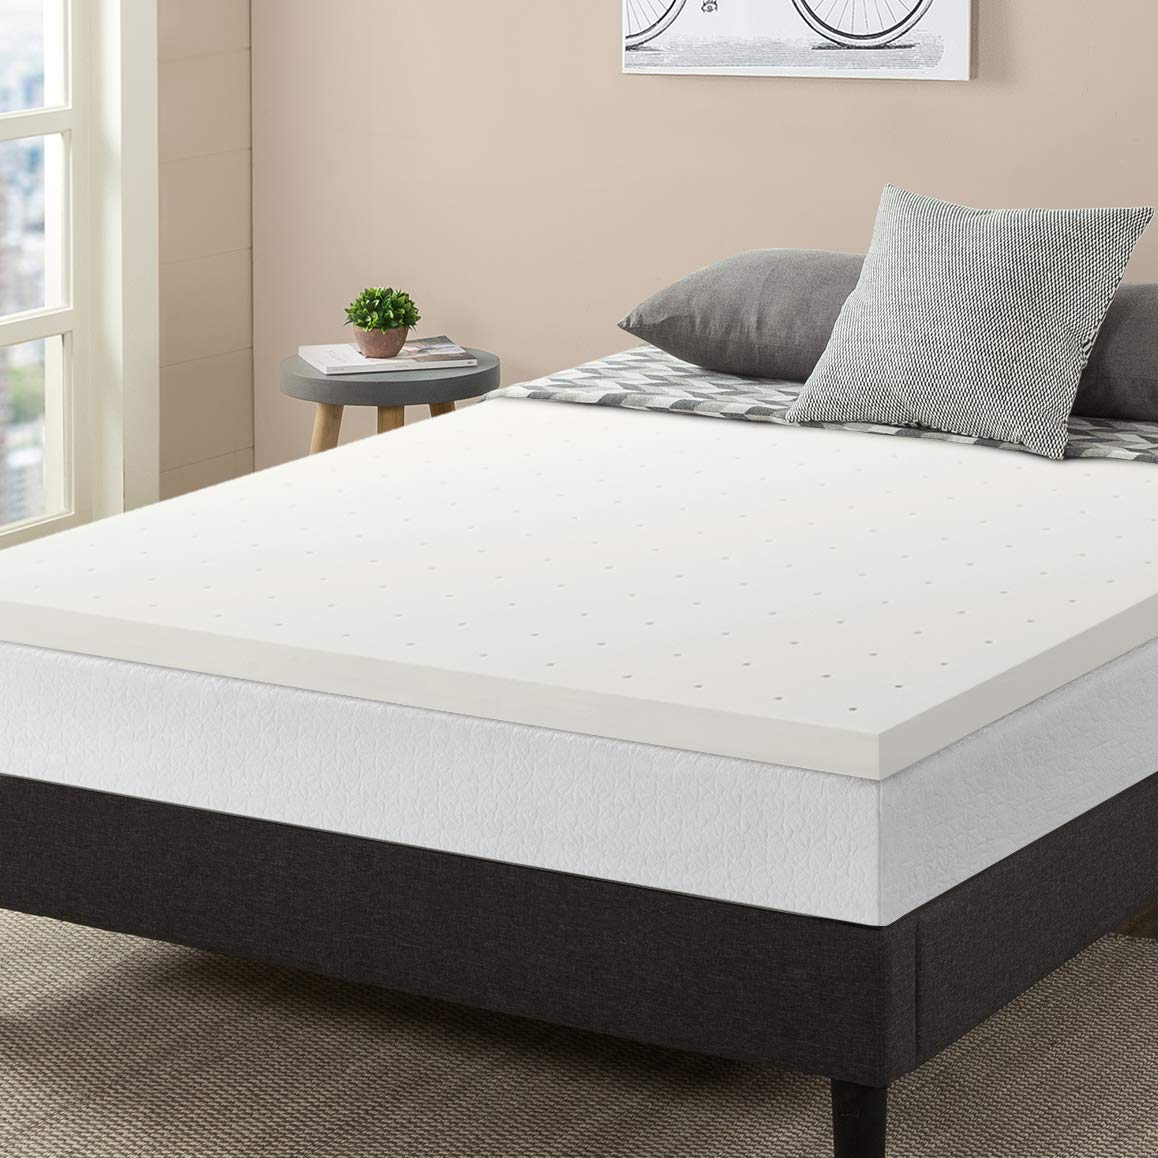 Features and Benefits of Using A Pillow Top Mattress